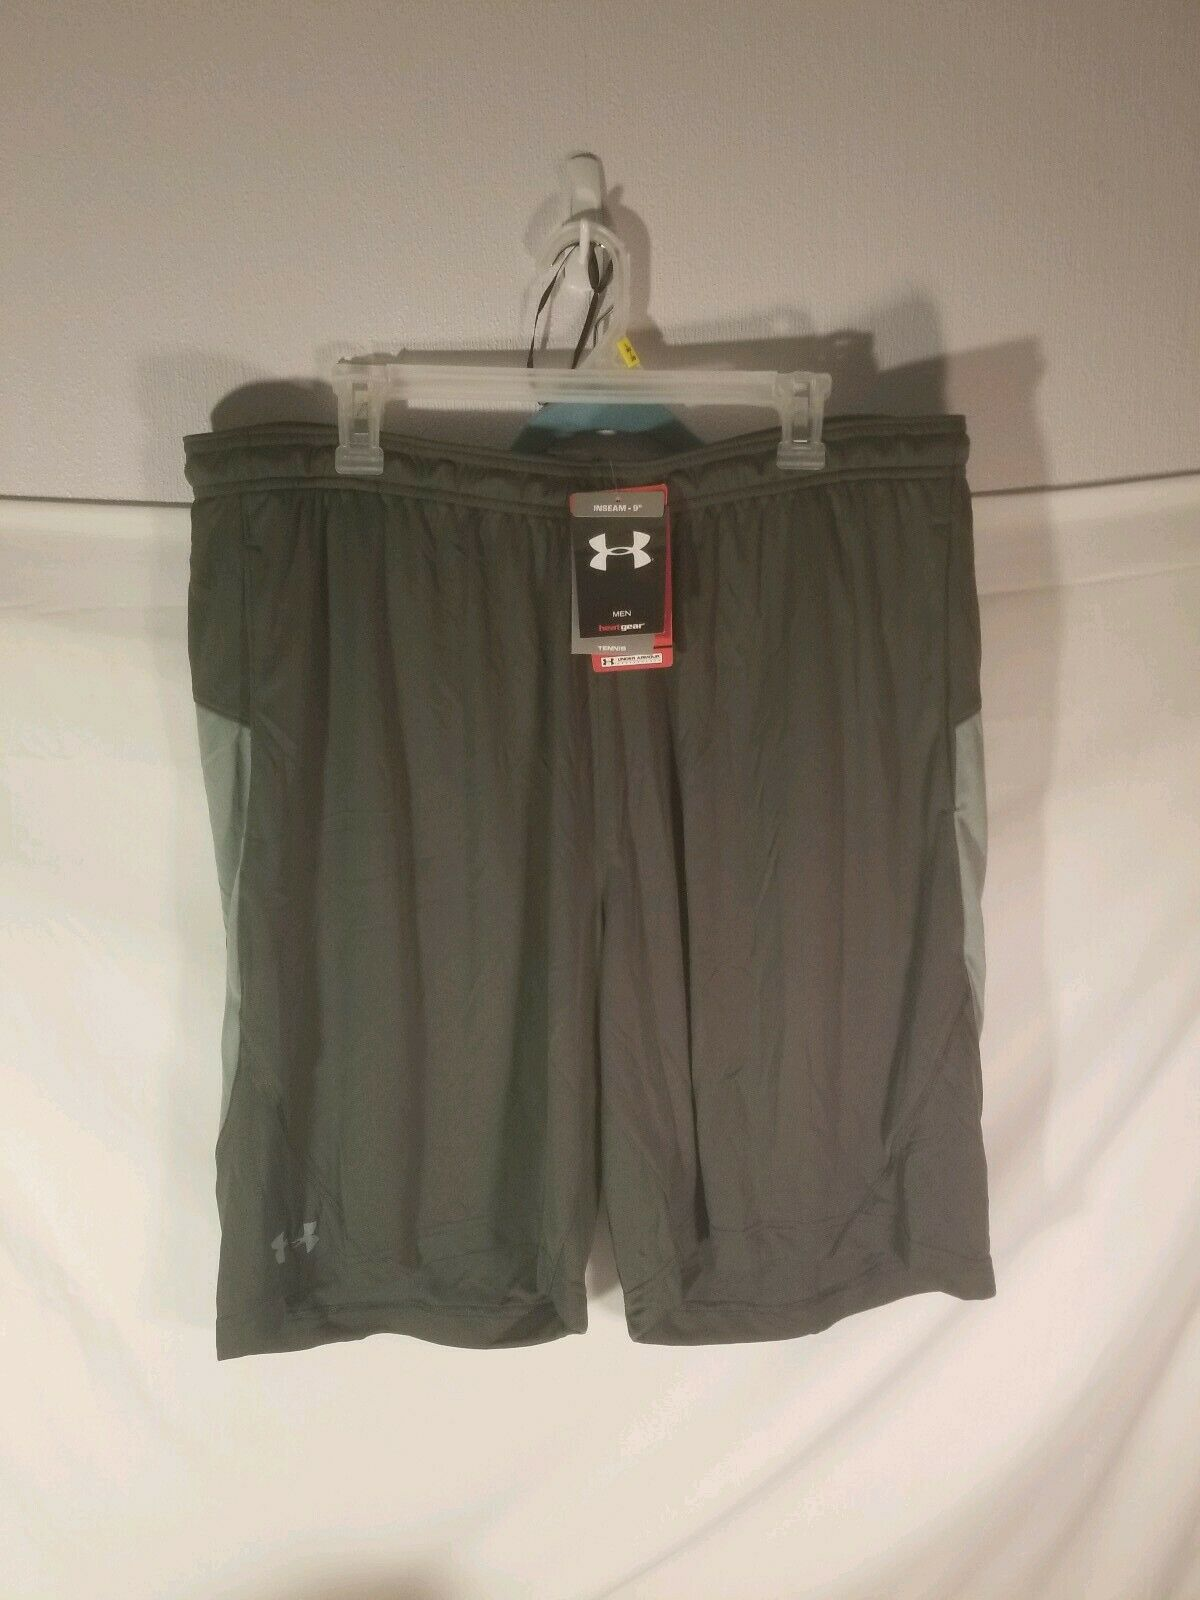 SHORTS 1291322-103 ATHLETIC UNDER ARMOUR MEN/'S POLYESTER